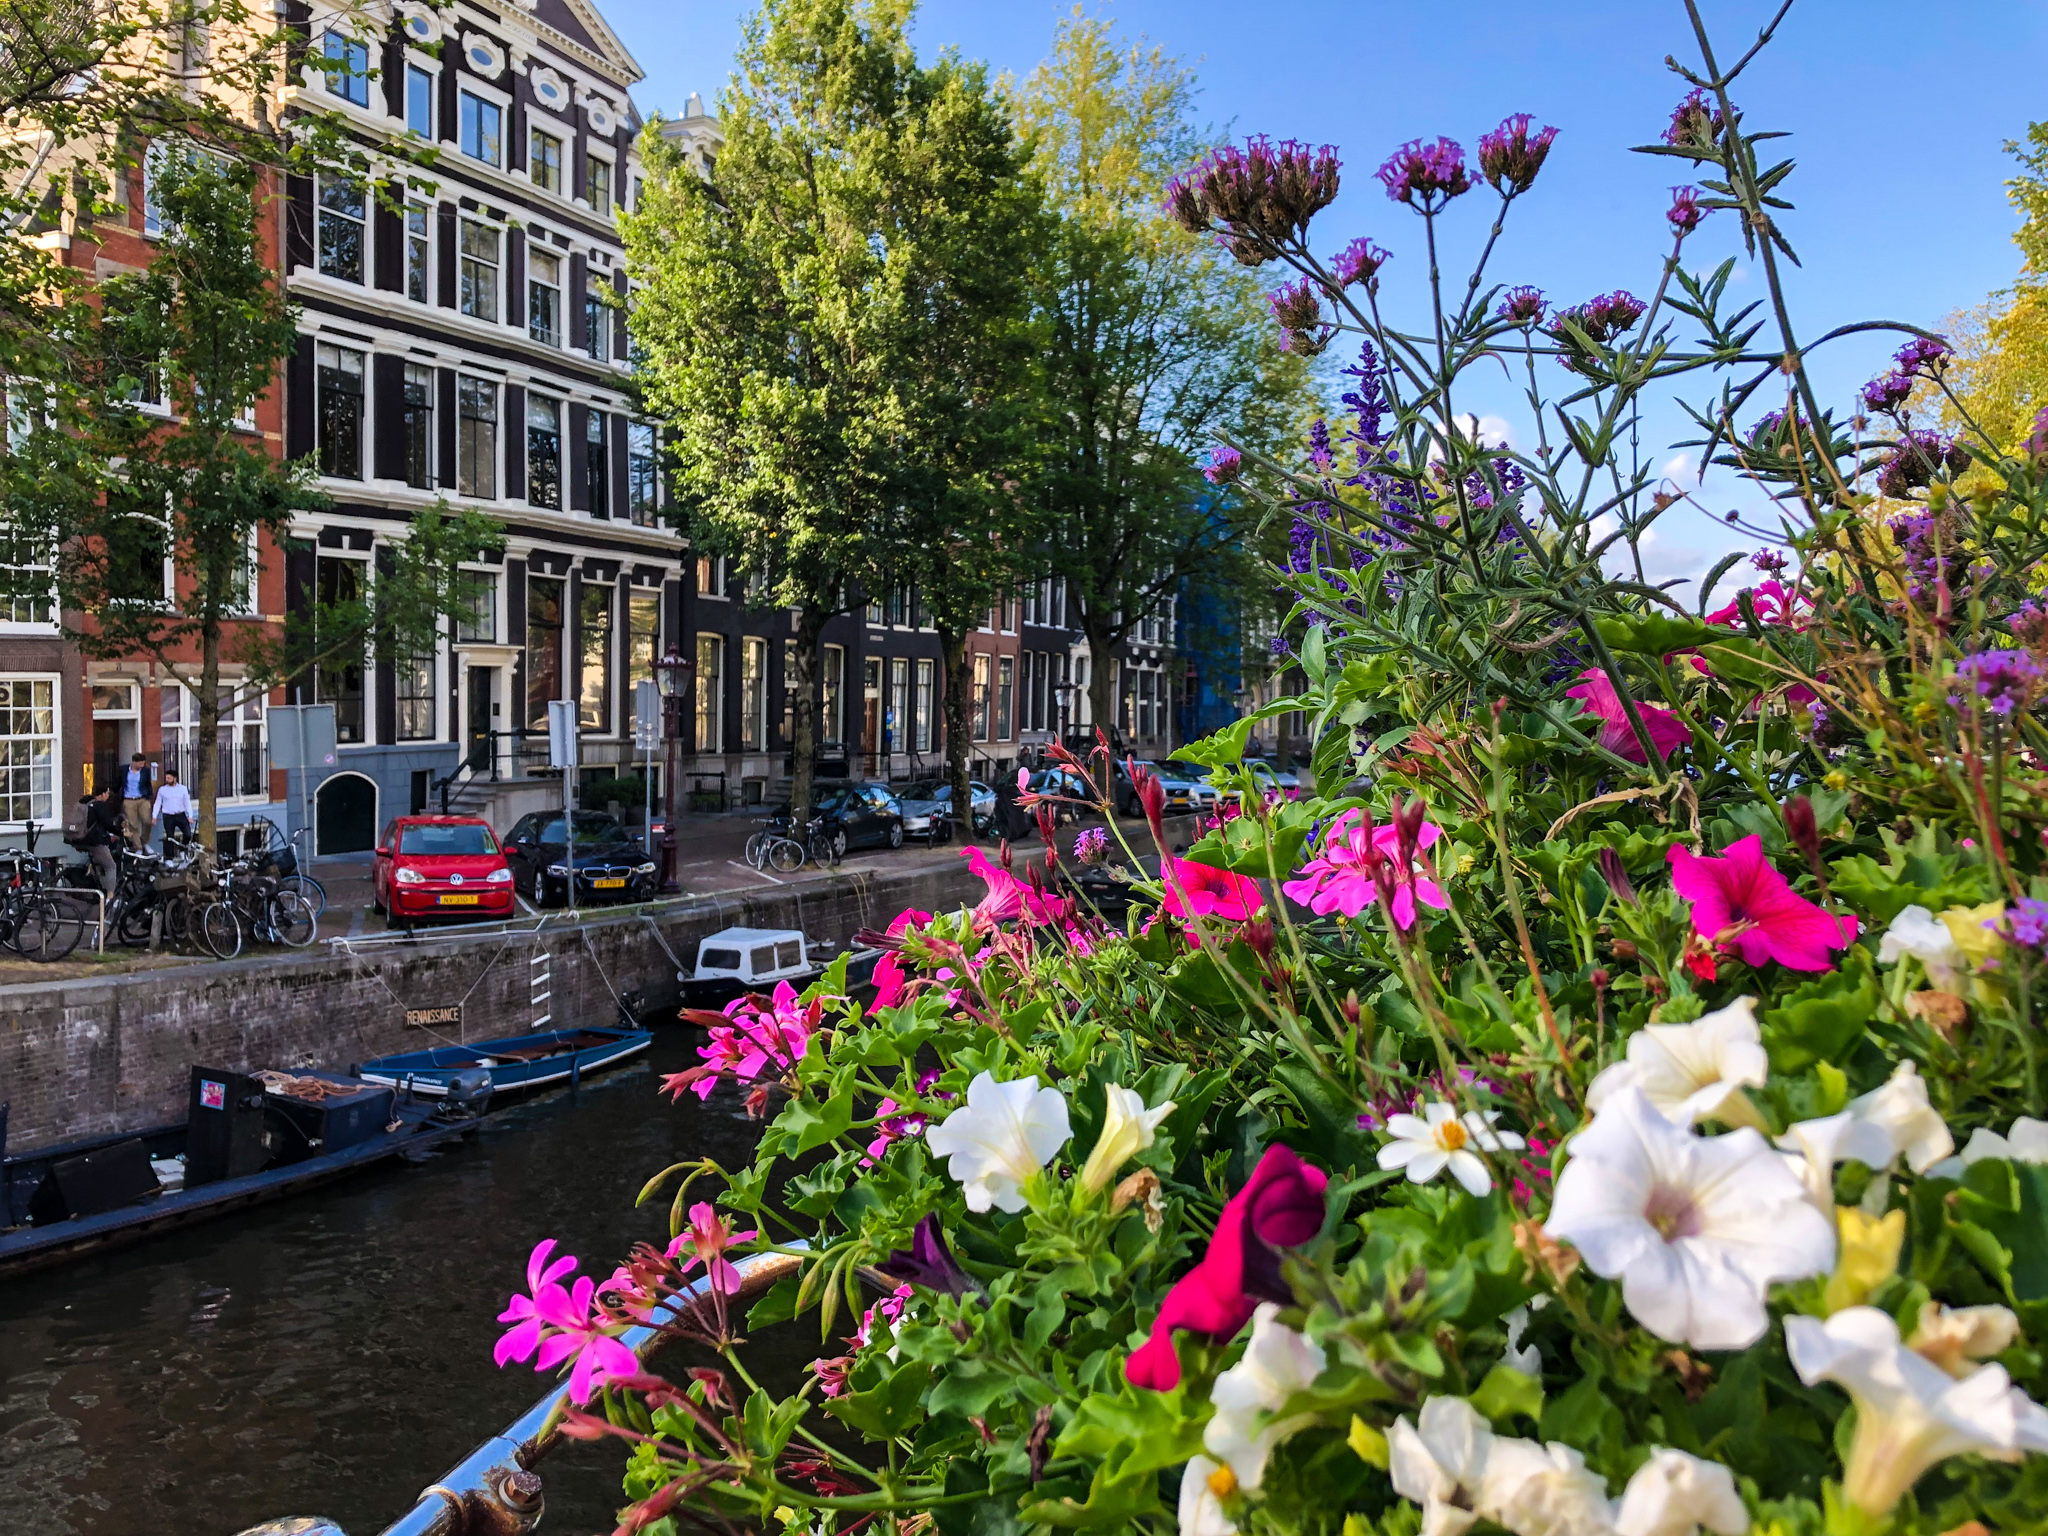 Is Amsterdam Worth Visiting? absolutely for these views